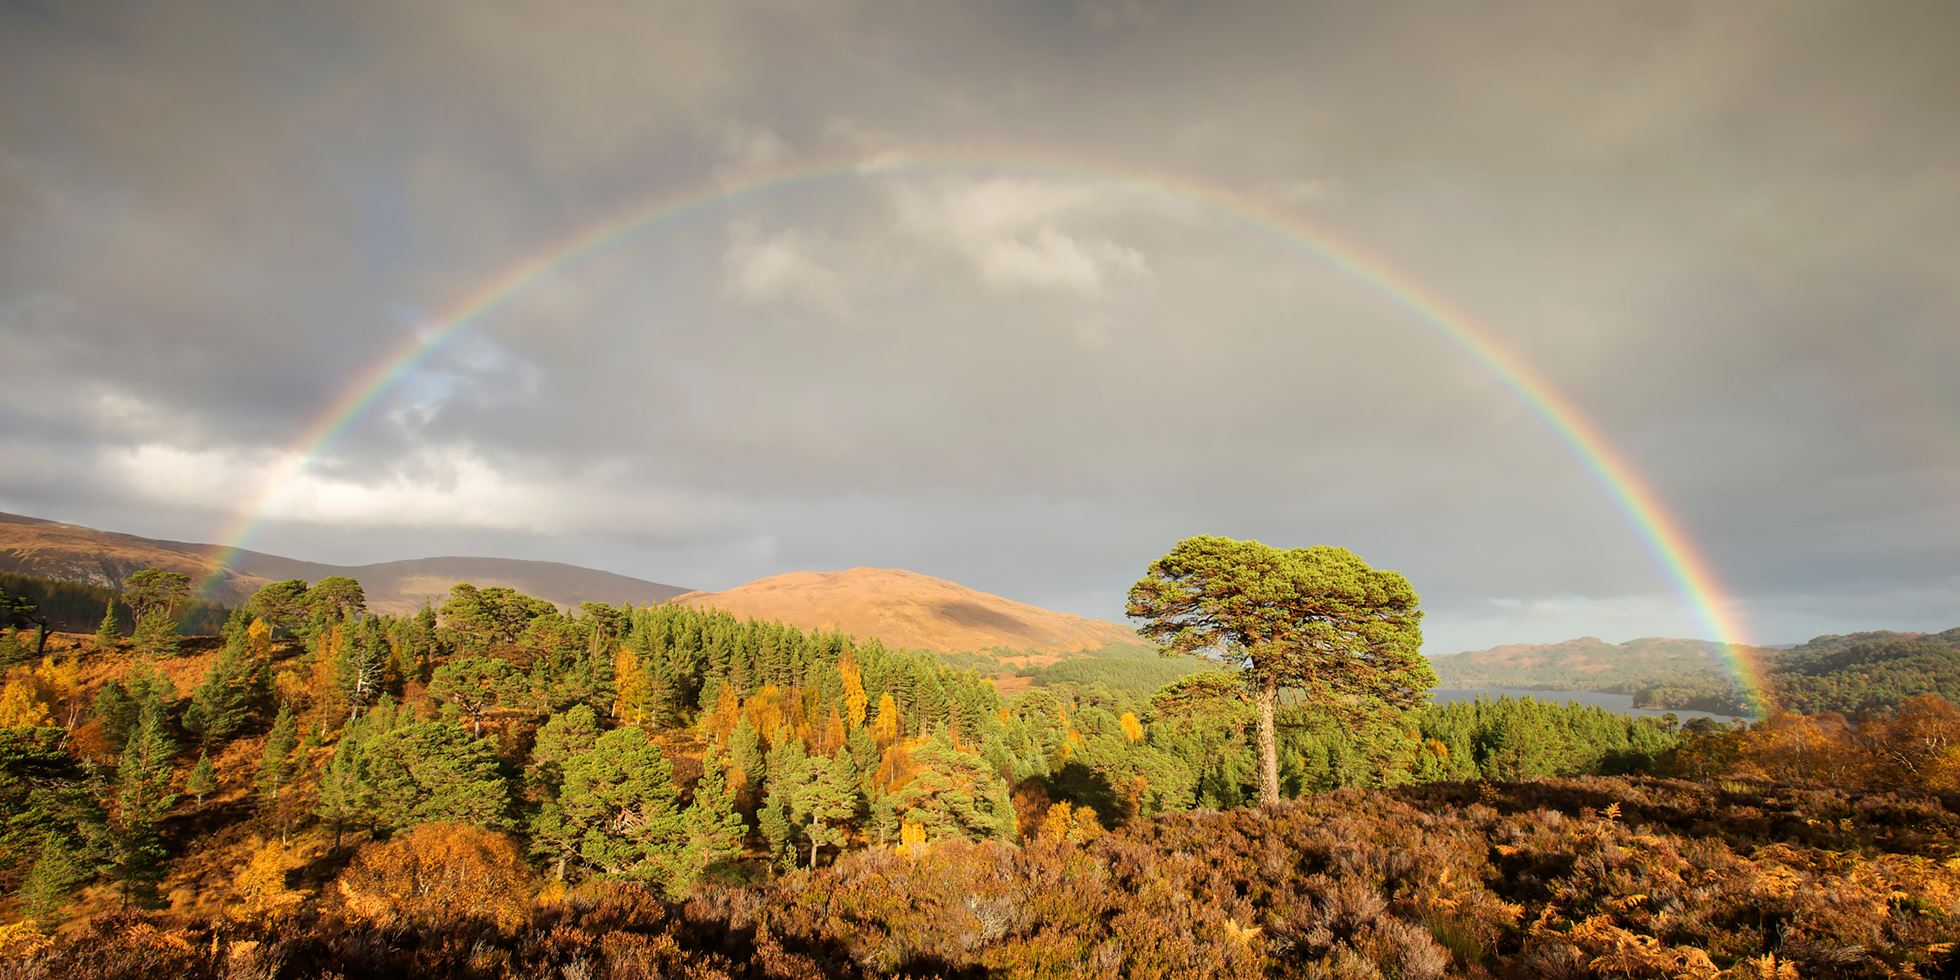 Rainbow over Scot's pine tree, Glen Affric, Scotland